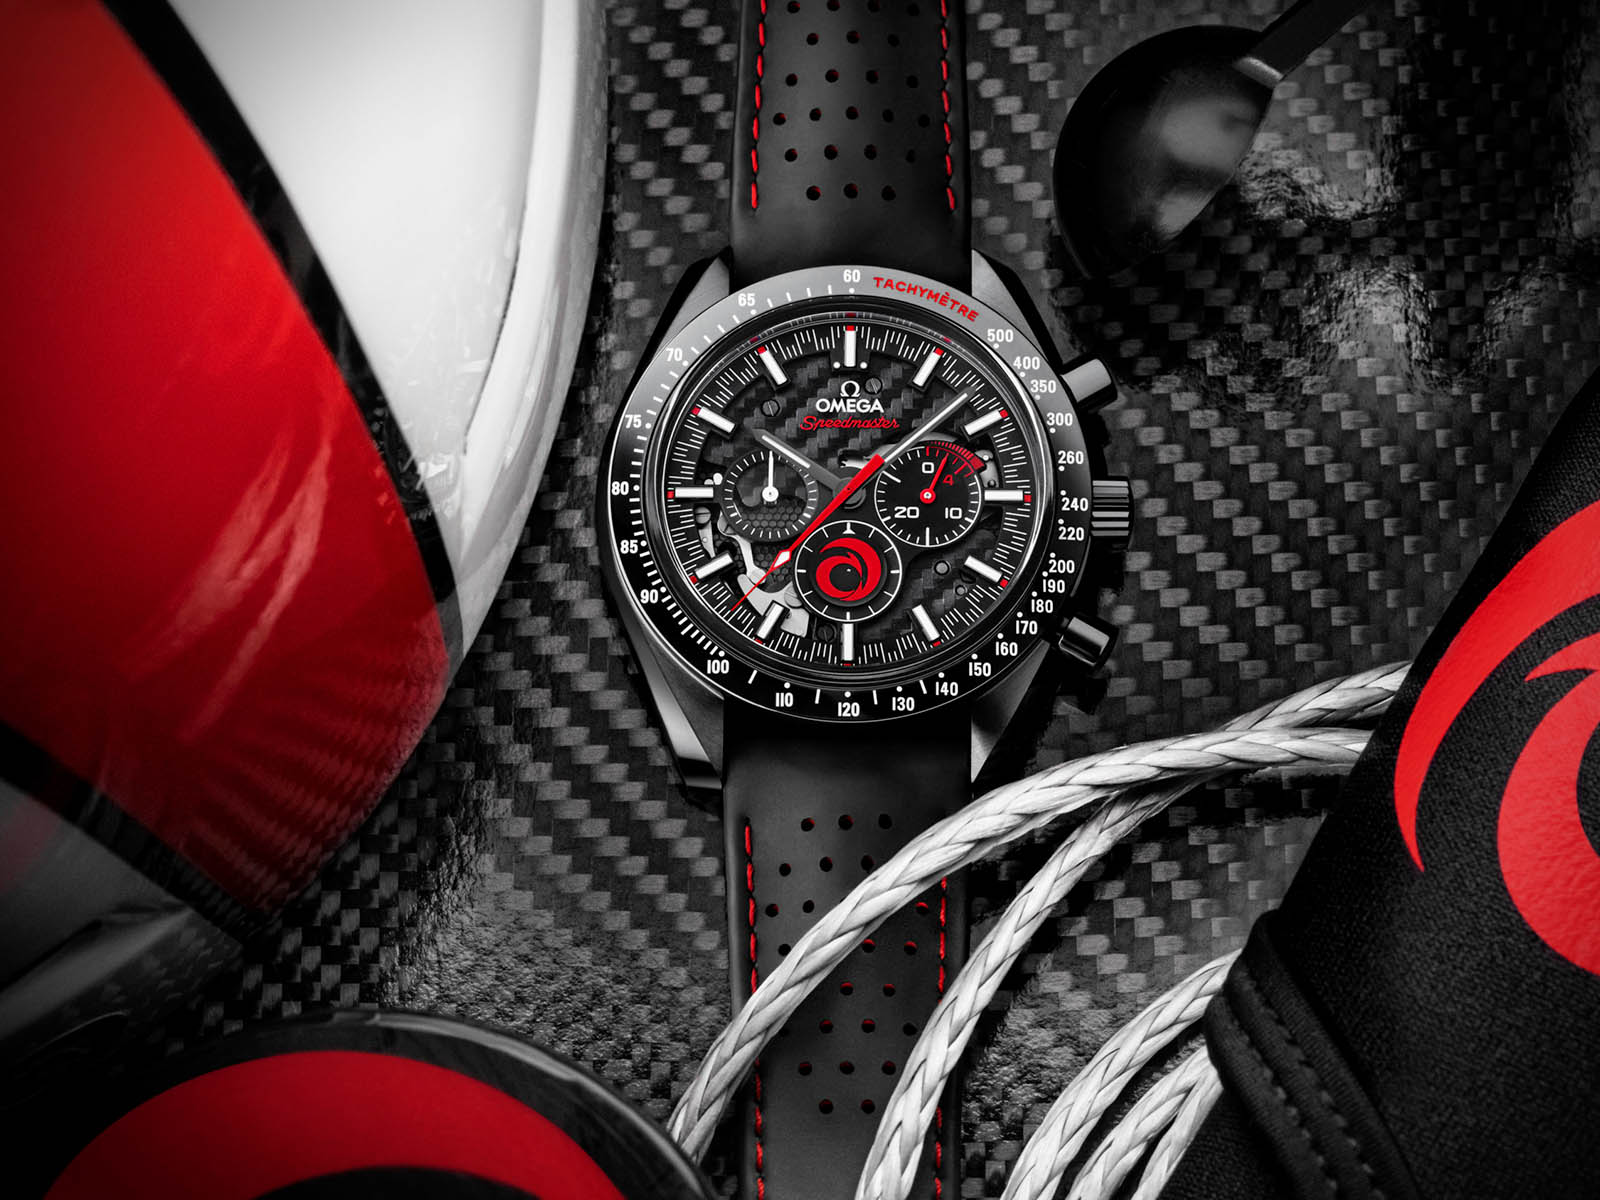 311-92-44-30-01-002-omega-speedmaster-dark-side-of-the-moon-alinghi-2.jpg